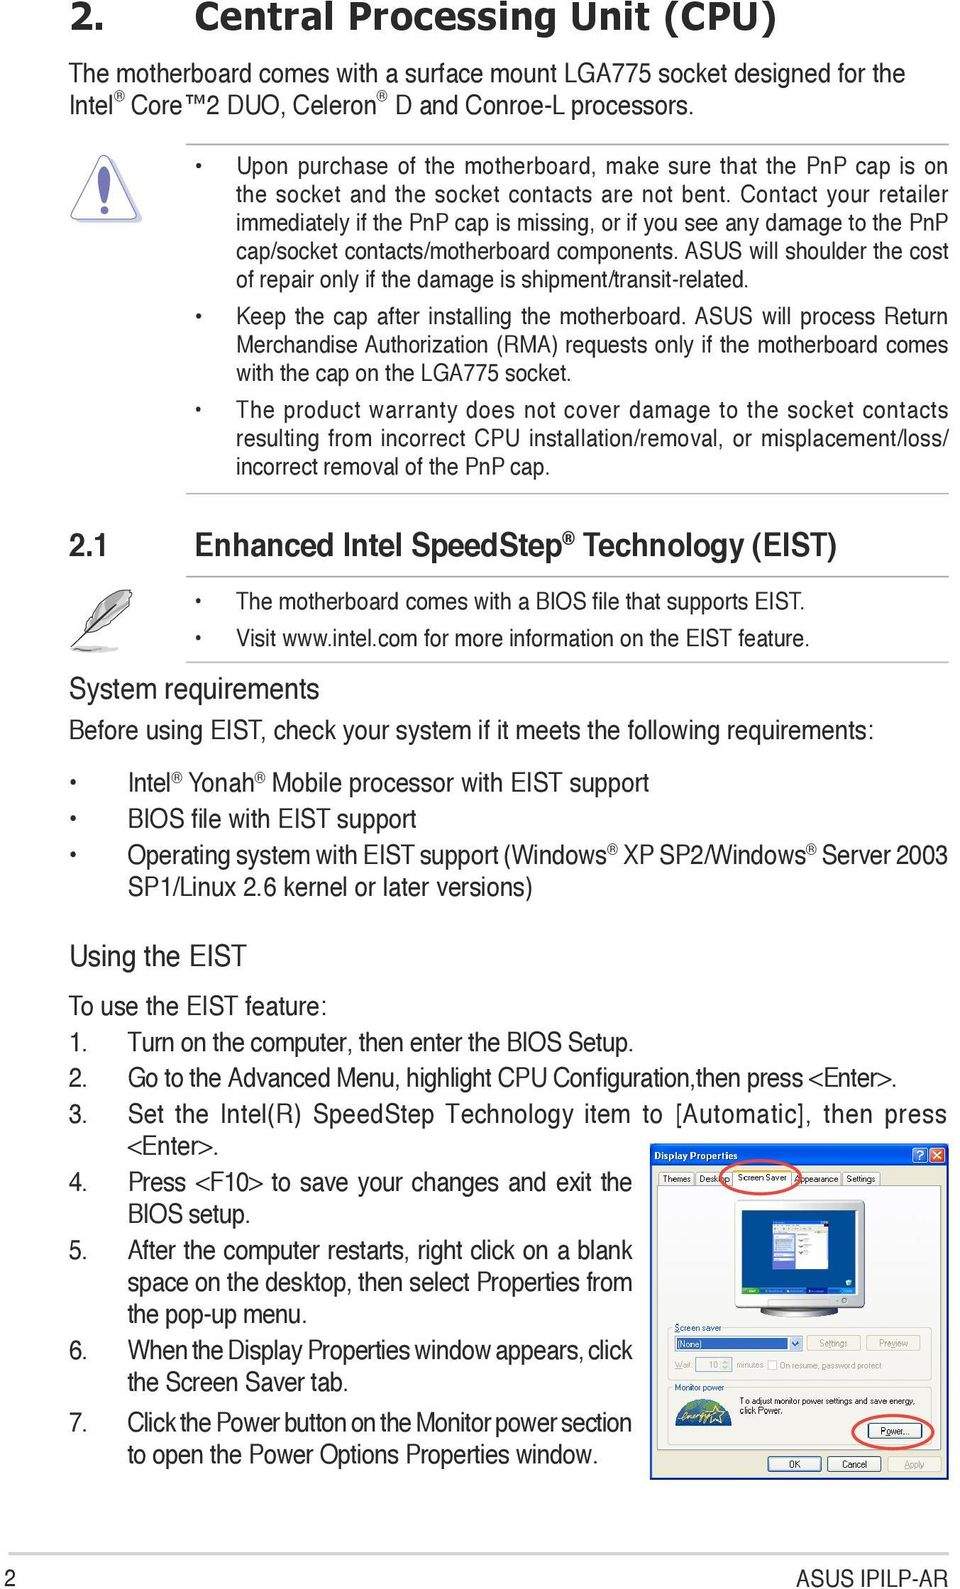 Ipilp Ar Motherboard Pdf Diagram Of How All The Components Are Placed On Asus Cubx Contact Your Retailer Immediately If Pnp Cap Is Missing Or You See Any